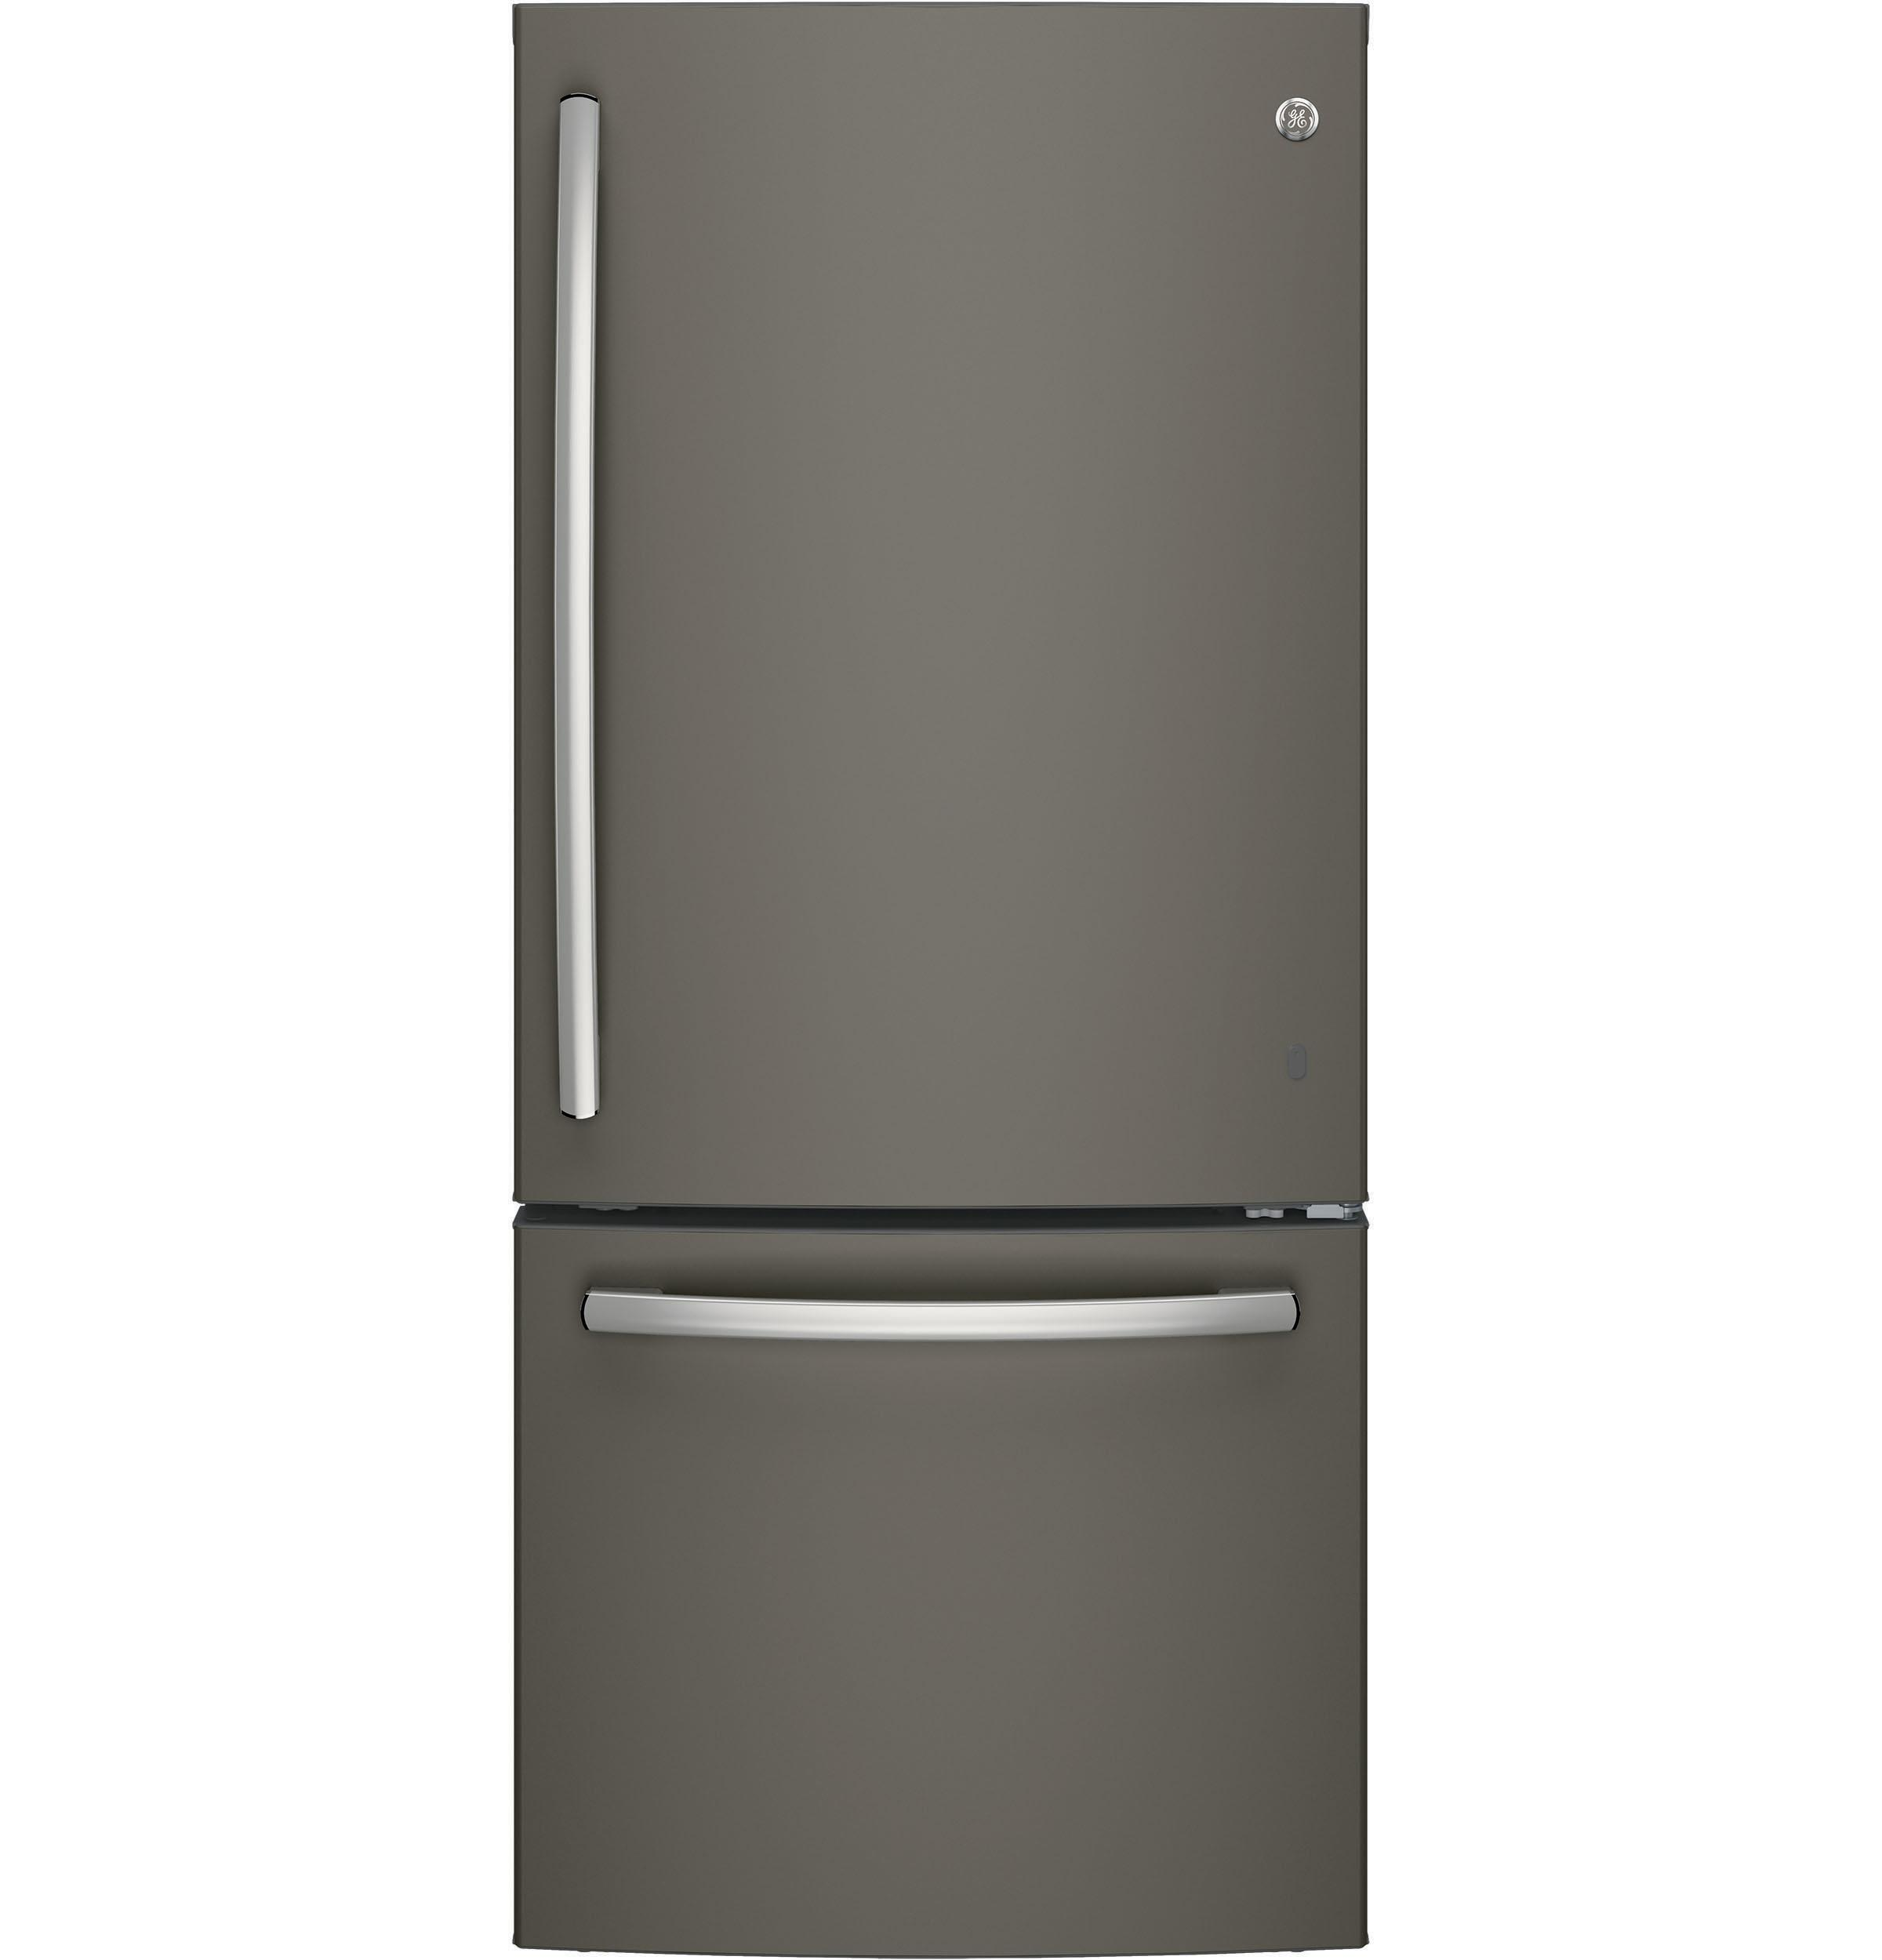 GE APPLIANCES GDE21EMKES